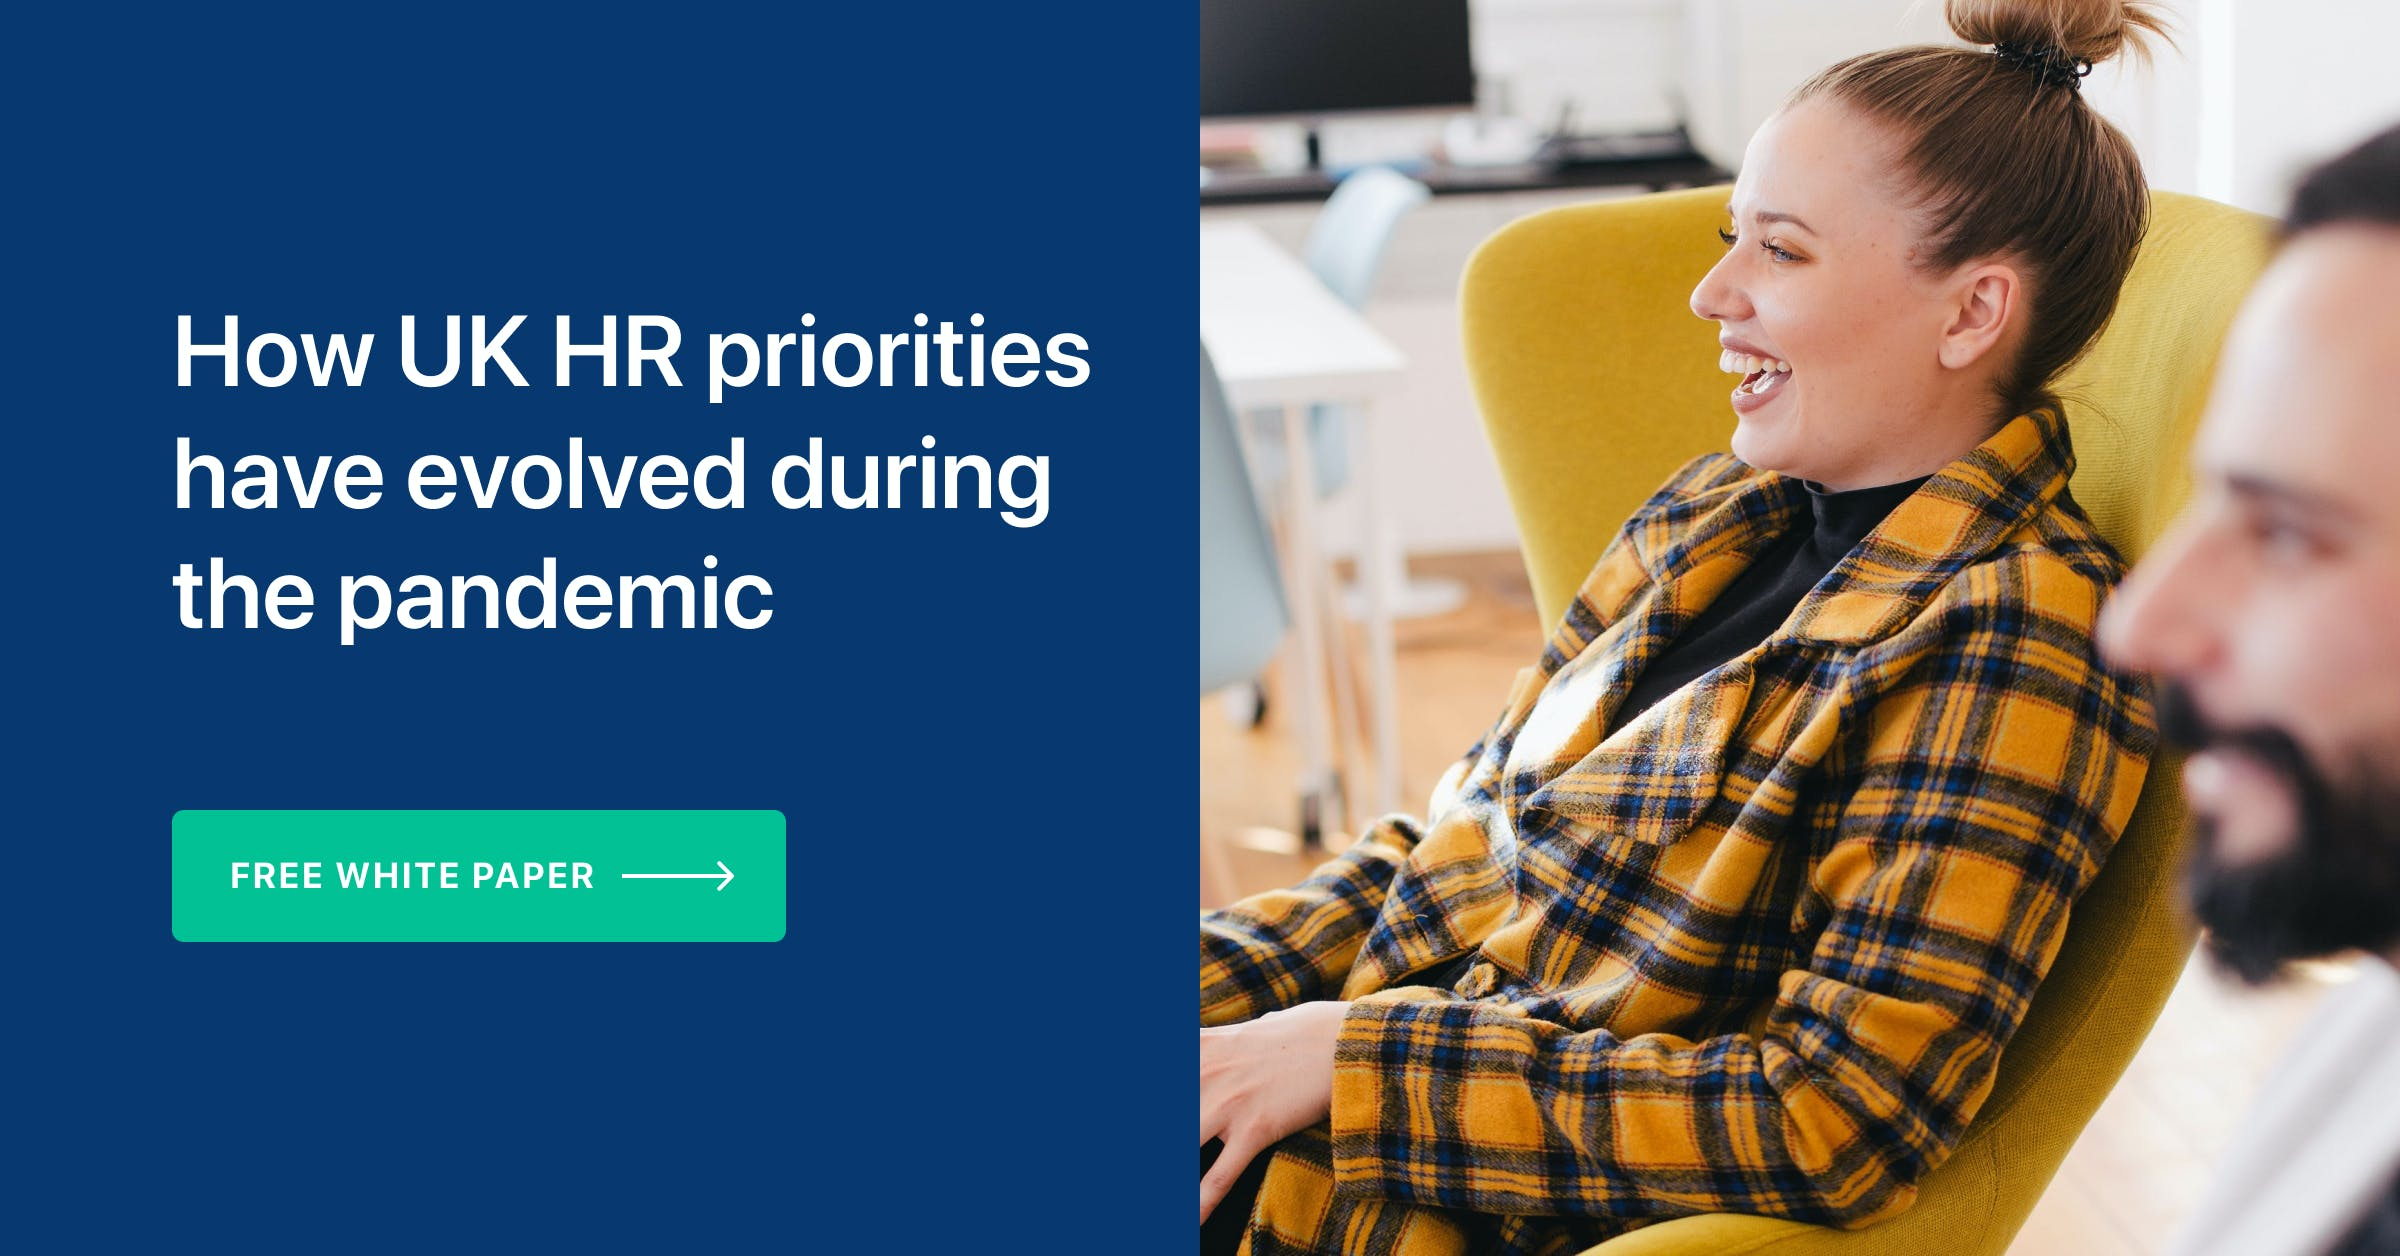 Discover how the priorities of HR professionals in the UK have been affected by the coronavirus pandemic